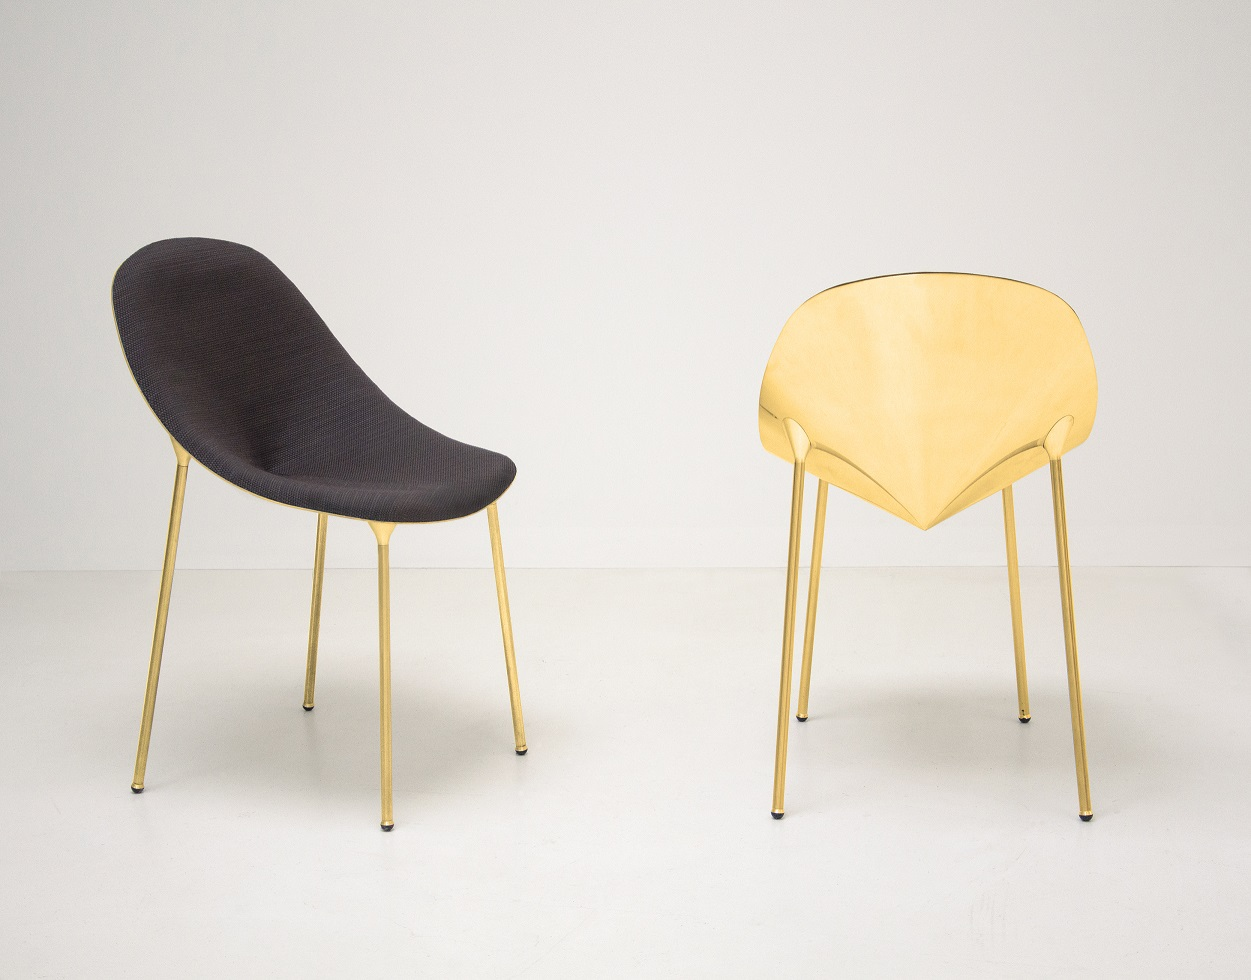 Bee chair by Xavier Lust, Belgium is Design